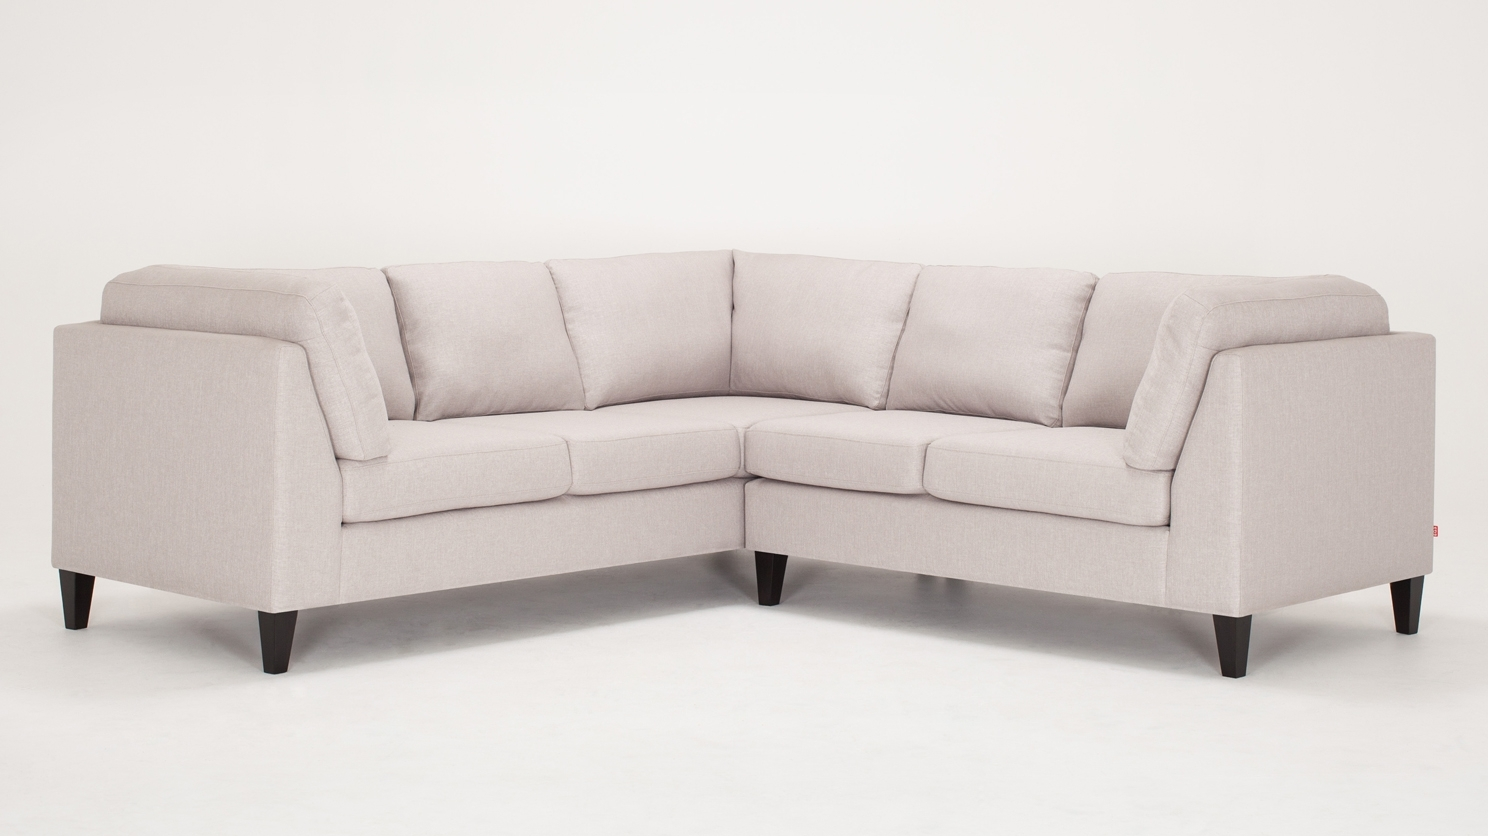 Eq3 | Salema 2 Piece Sectional Sofa – Fabric In Eq3 Sectional Sofas (View 8 of 10)